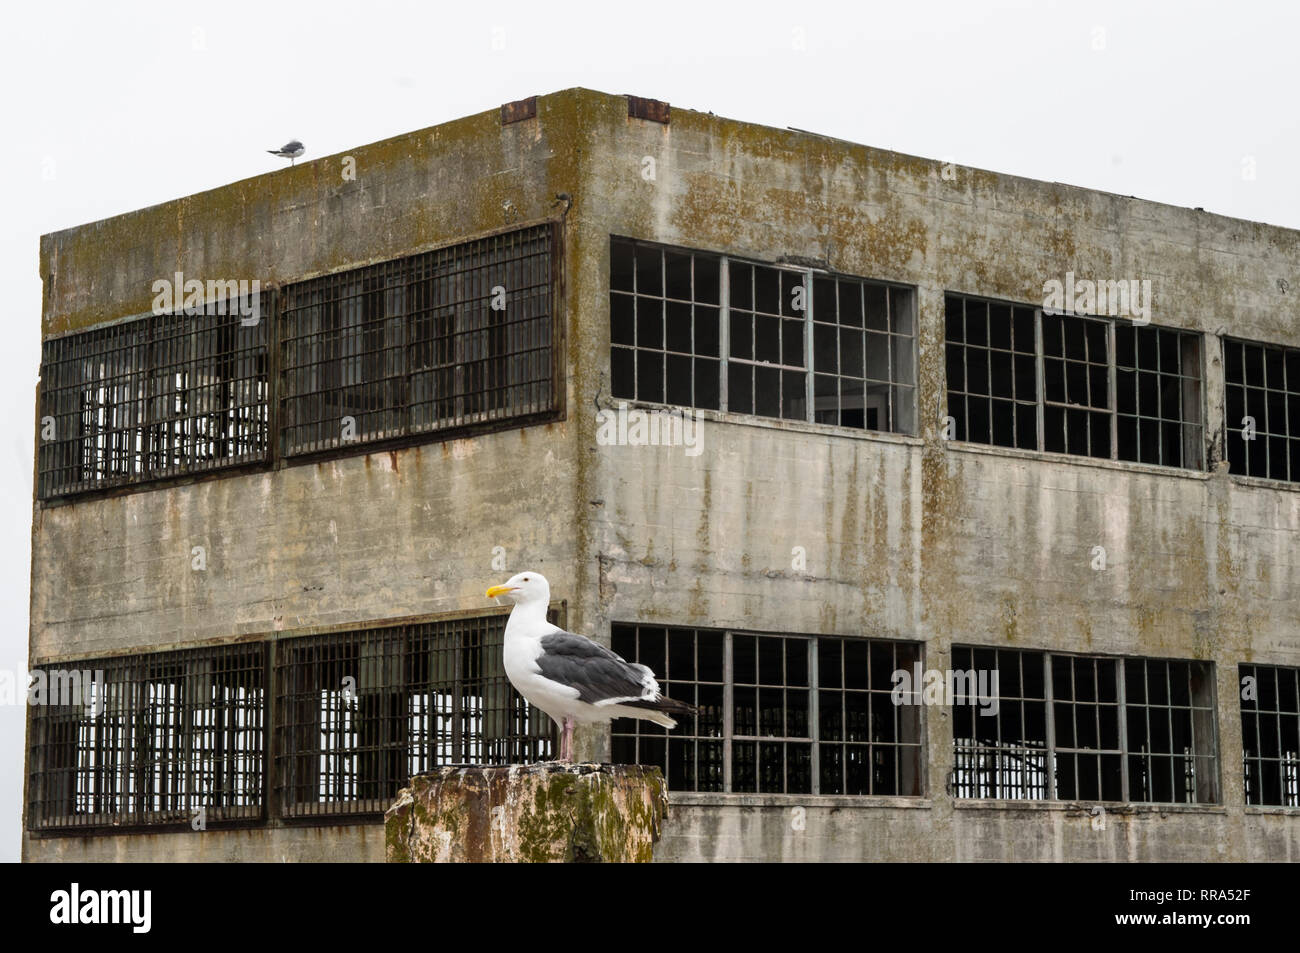 A seagull in front of Alcatraz Island Prison in San Francisco Bay Stock Photo